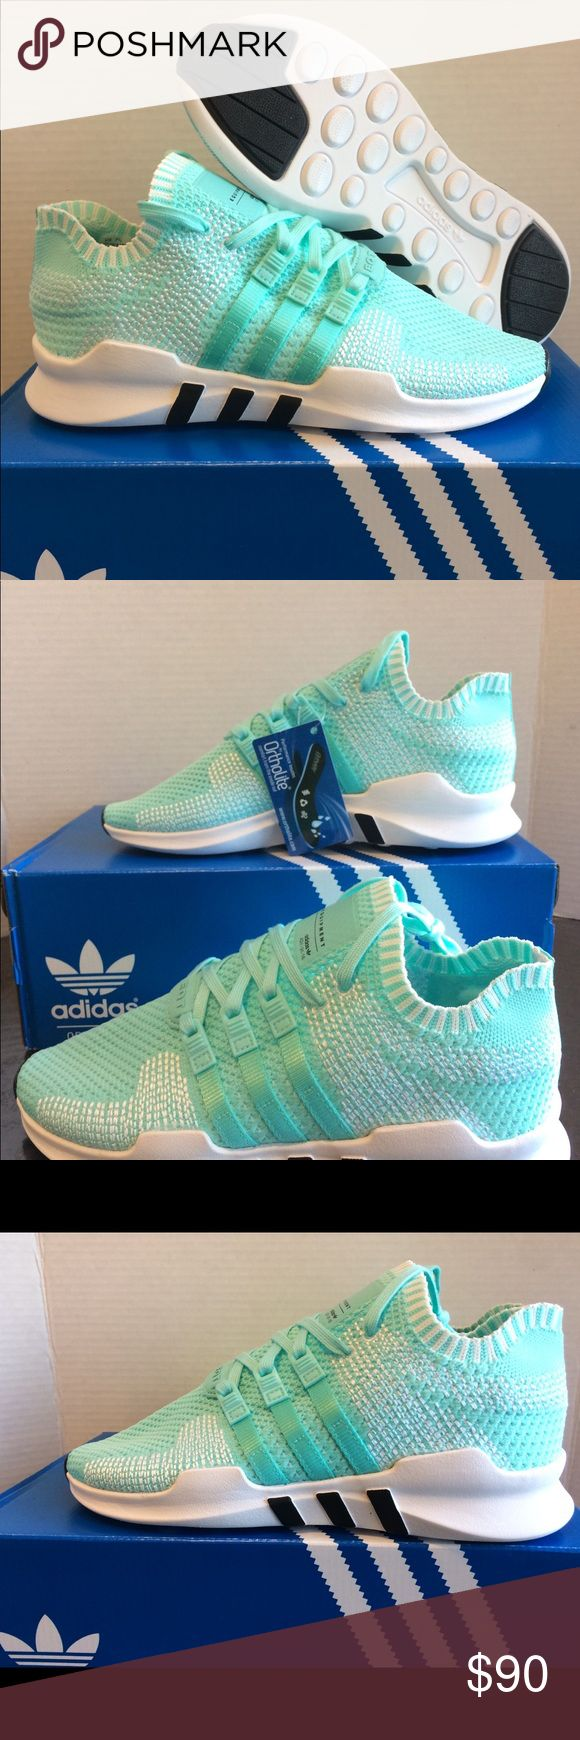 New Adidas EQT ADV Turquoise Running Shoes New Adidas    Size 7.5  Very great looking athletic shoes with amazing comfort. Don't end up paying those high prices when you can get them for an affordable price.  No refunds No low ballers Authentic    NMD, AVD, EQT, Mastermind, Primeknit, original, all stars, Bape, Ultraboost, tubular, Zx flux, adidas women, adidas running shoes, women's running shoes, women running track basketball soccer. Girly shoes NMD adidas, Jordan 1, Jordan 2, Jordan 3…